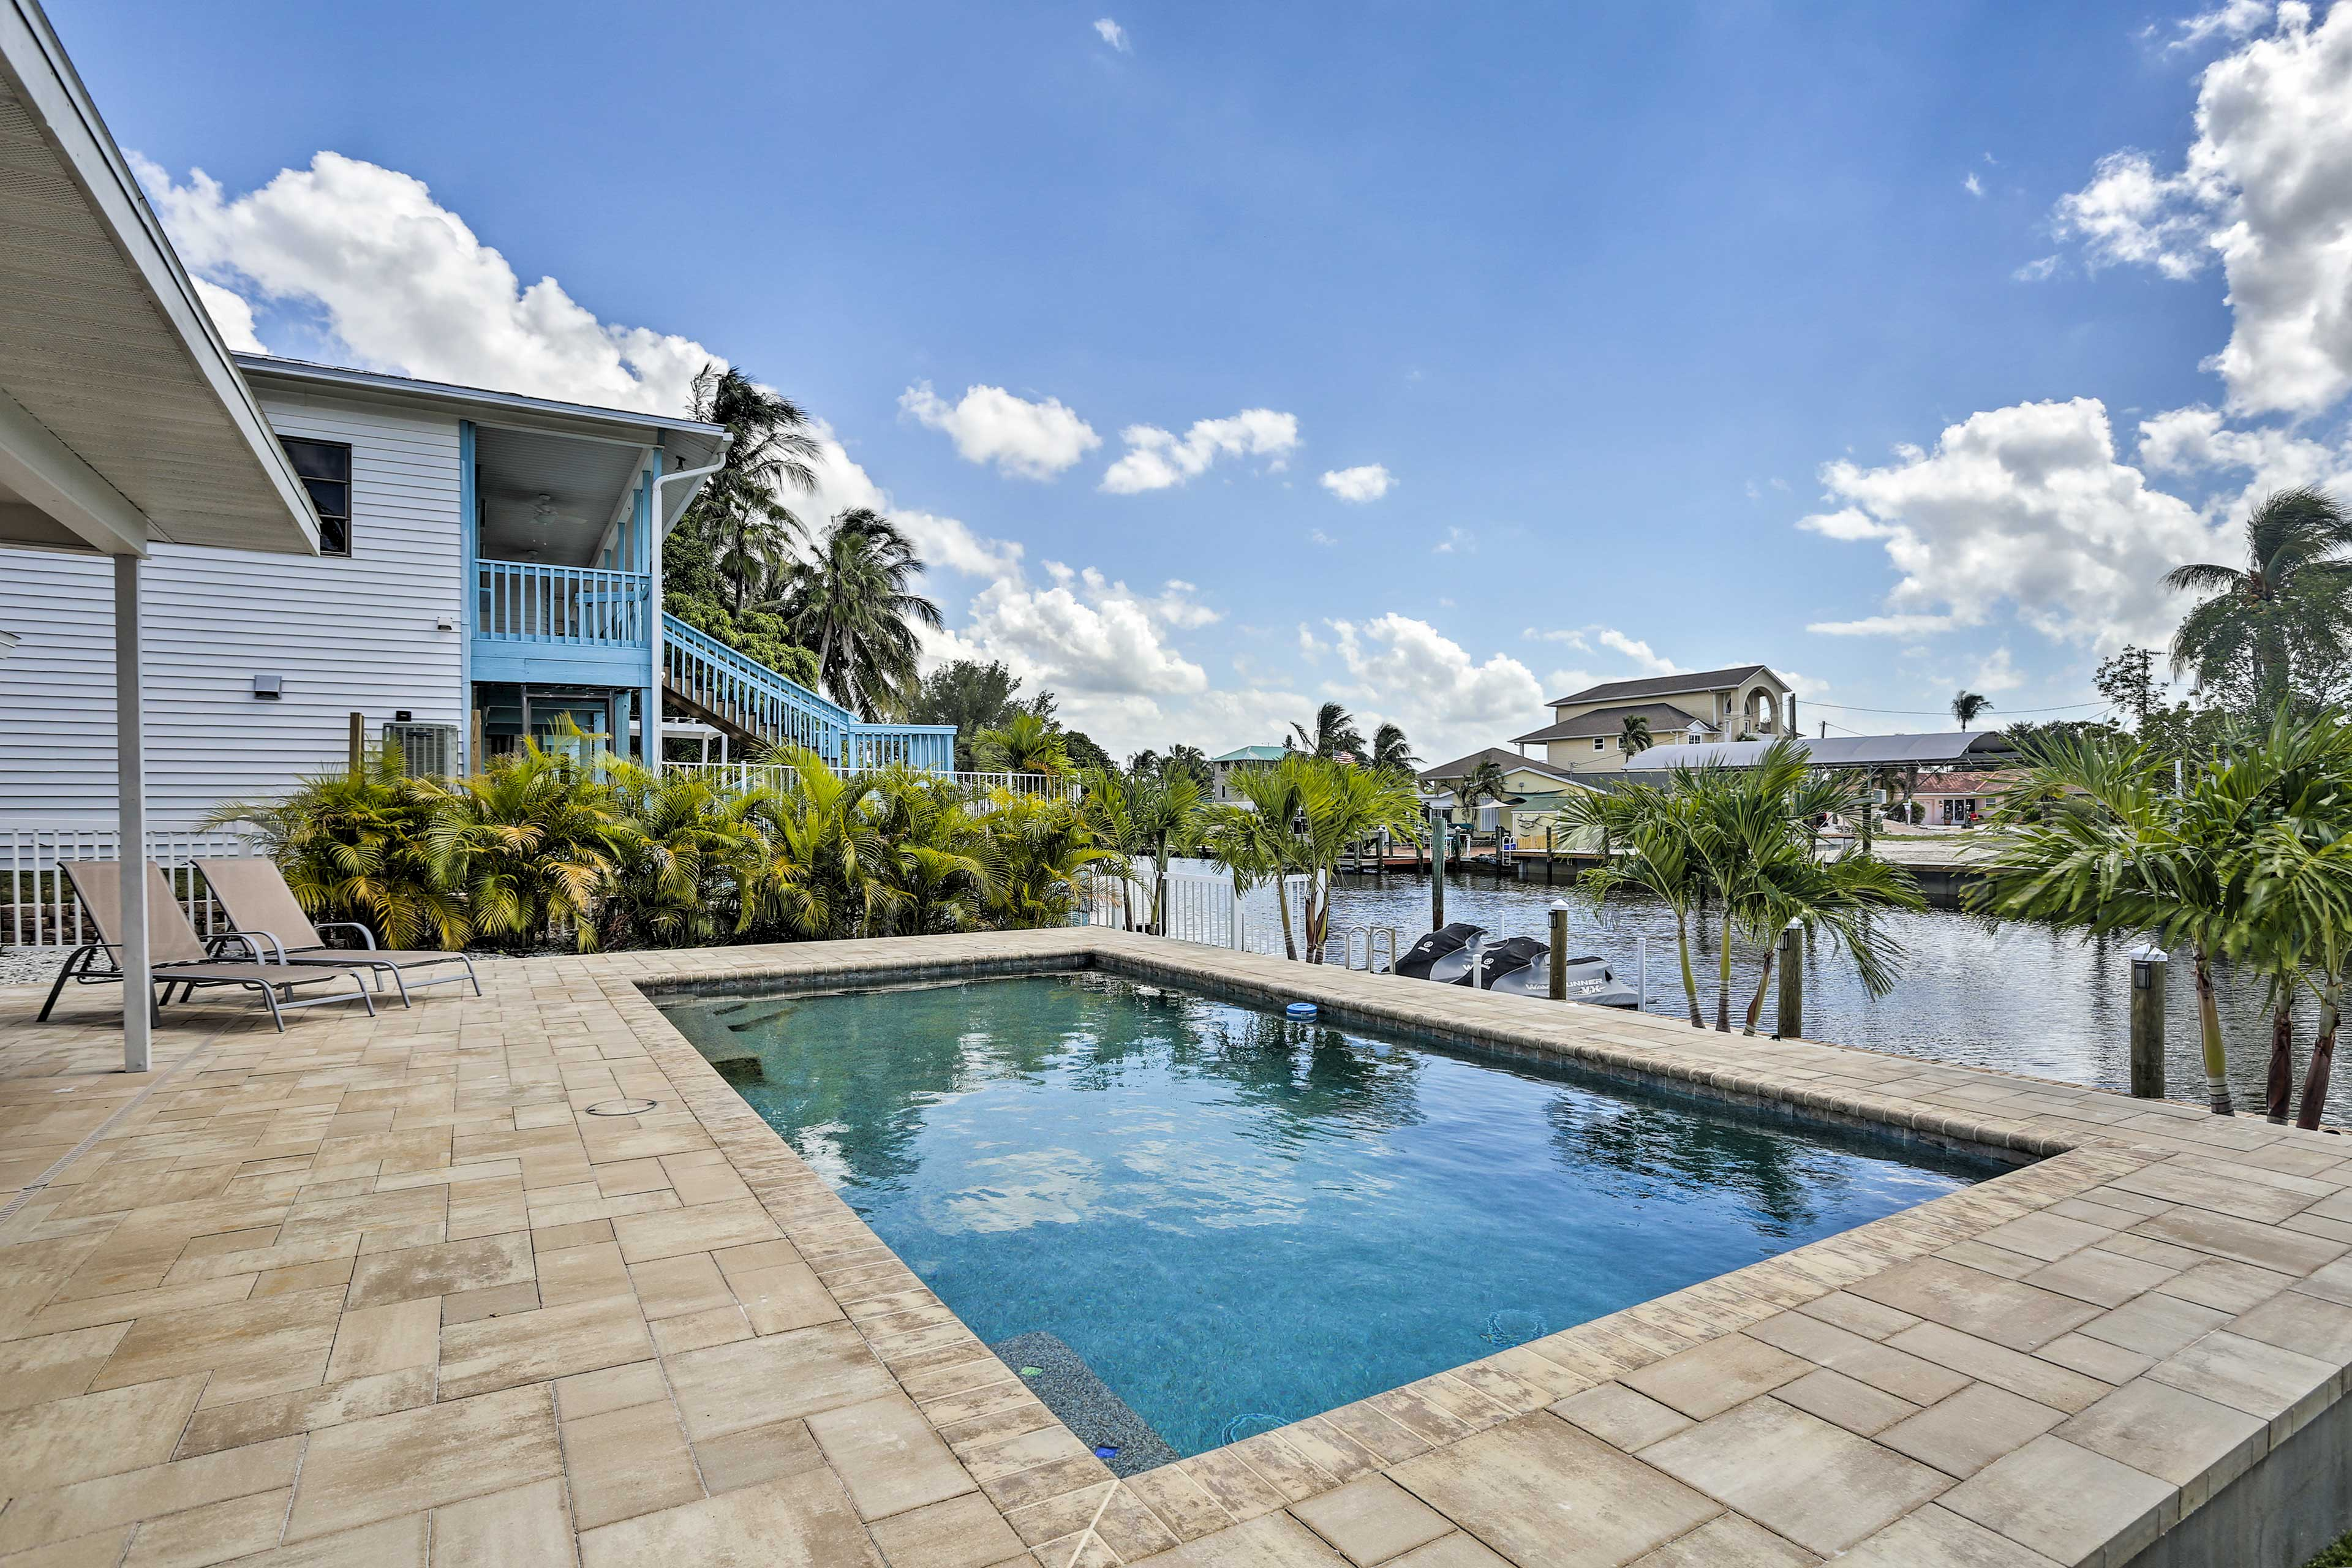 Dive into relaxation at this St. James City vacation rental!